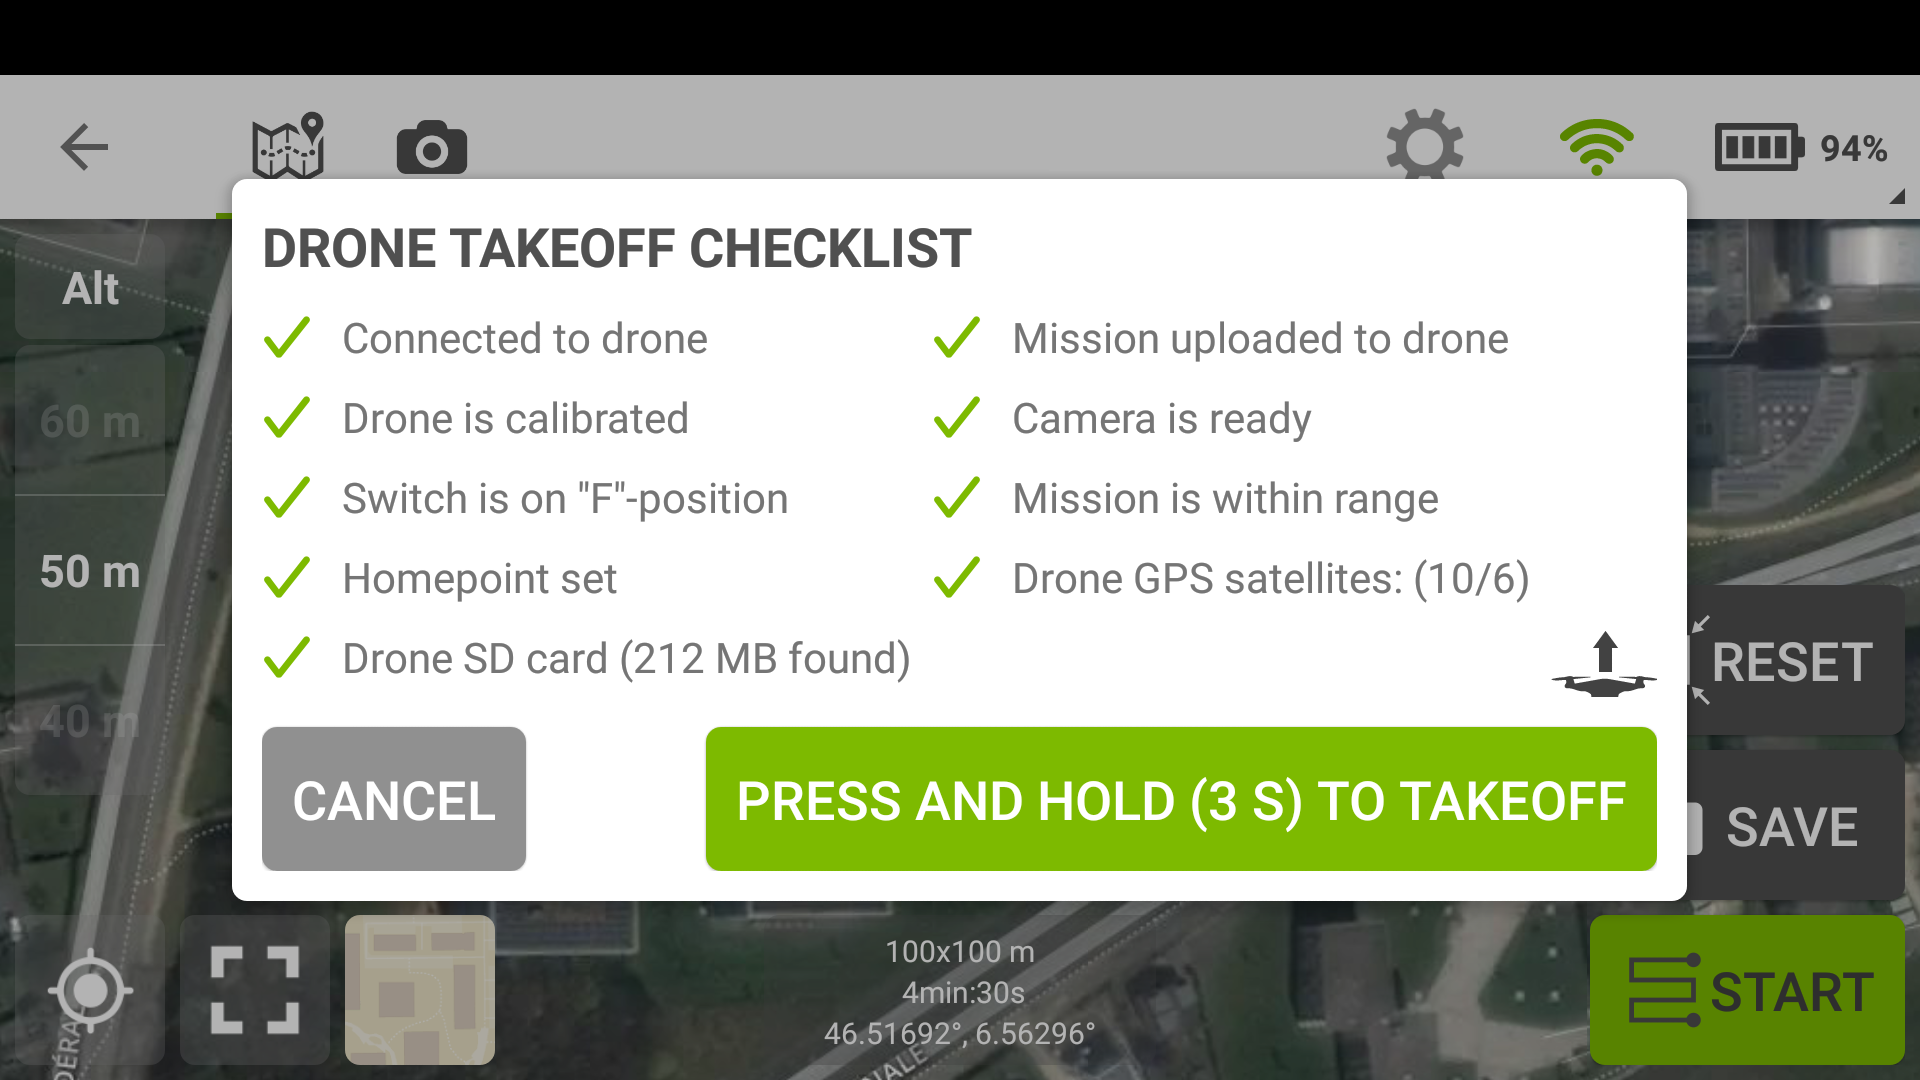 wizard_takeoff_checklist.png